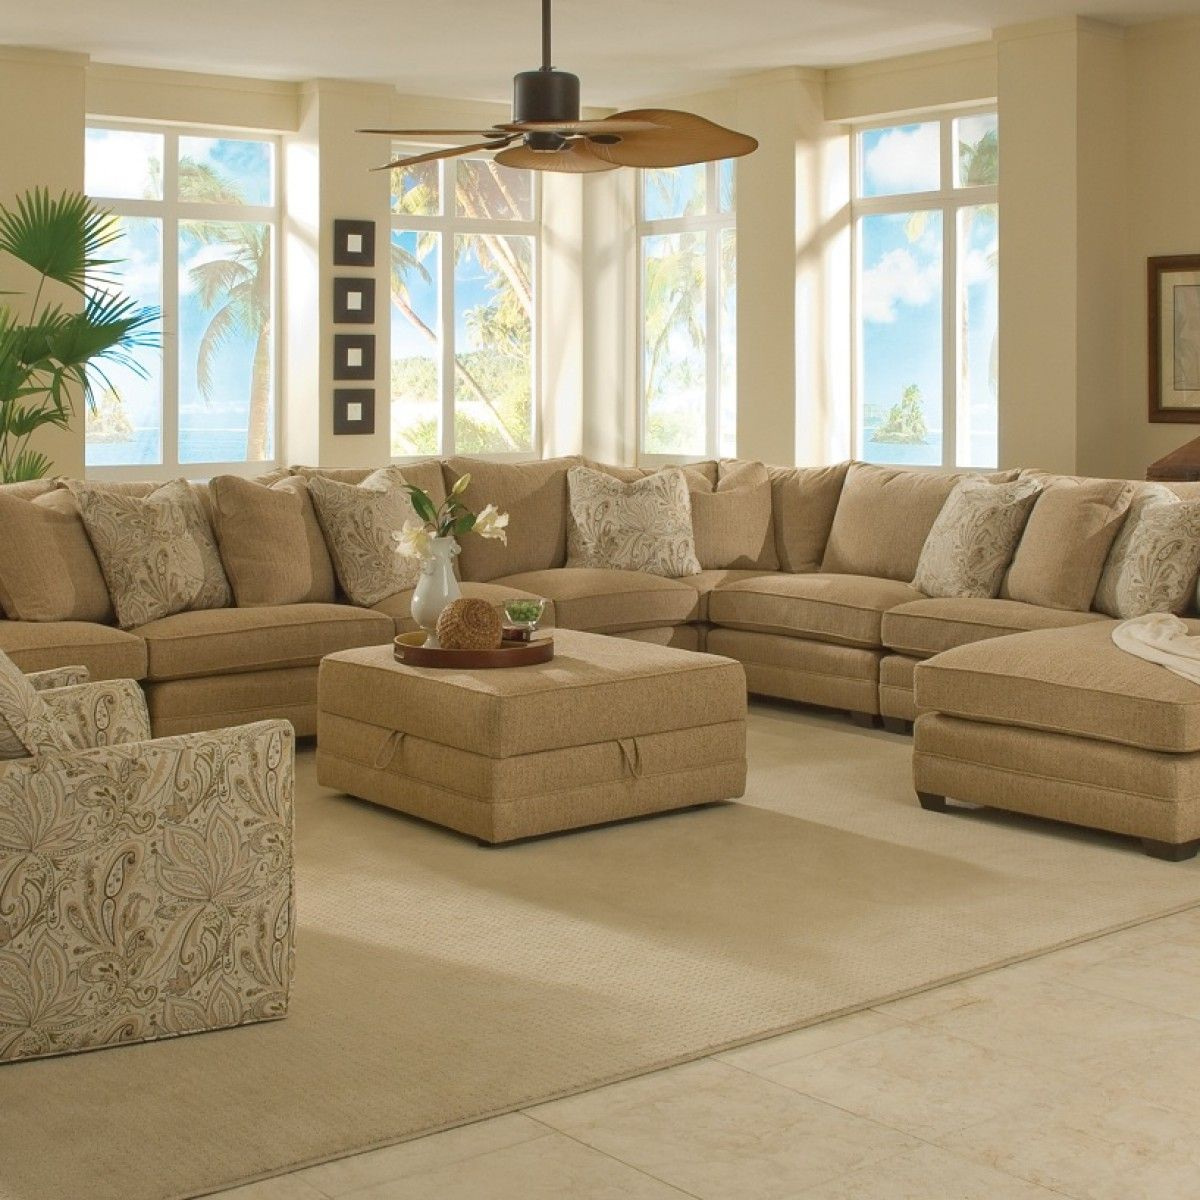 Magnificent large sectional sofas family room for Sectional living room ideas